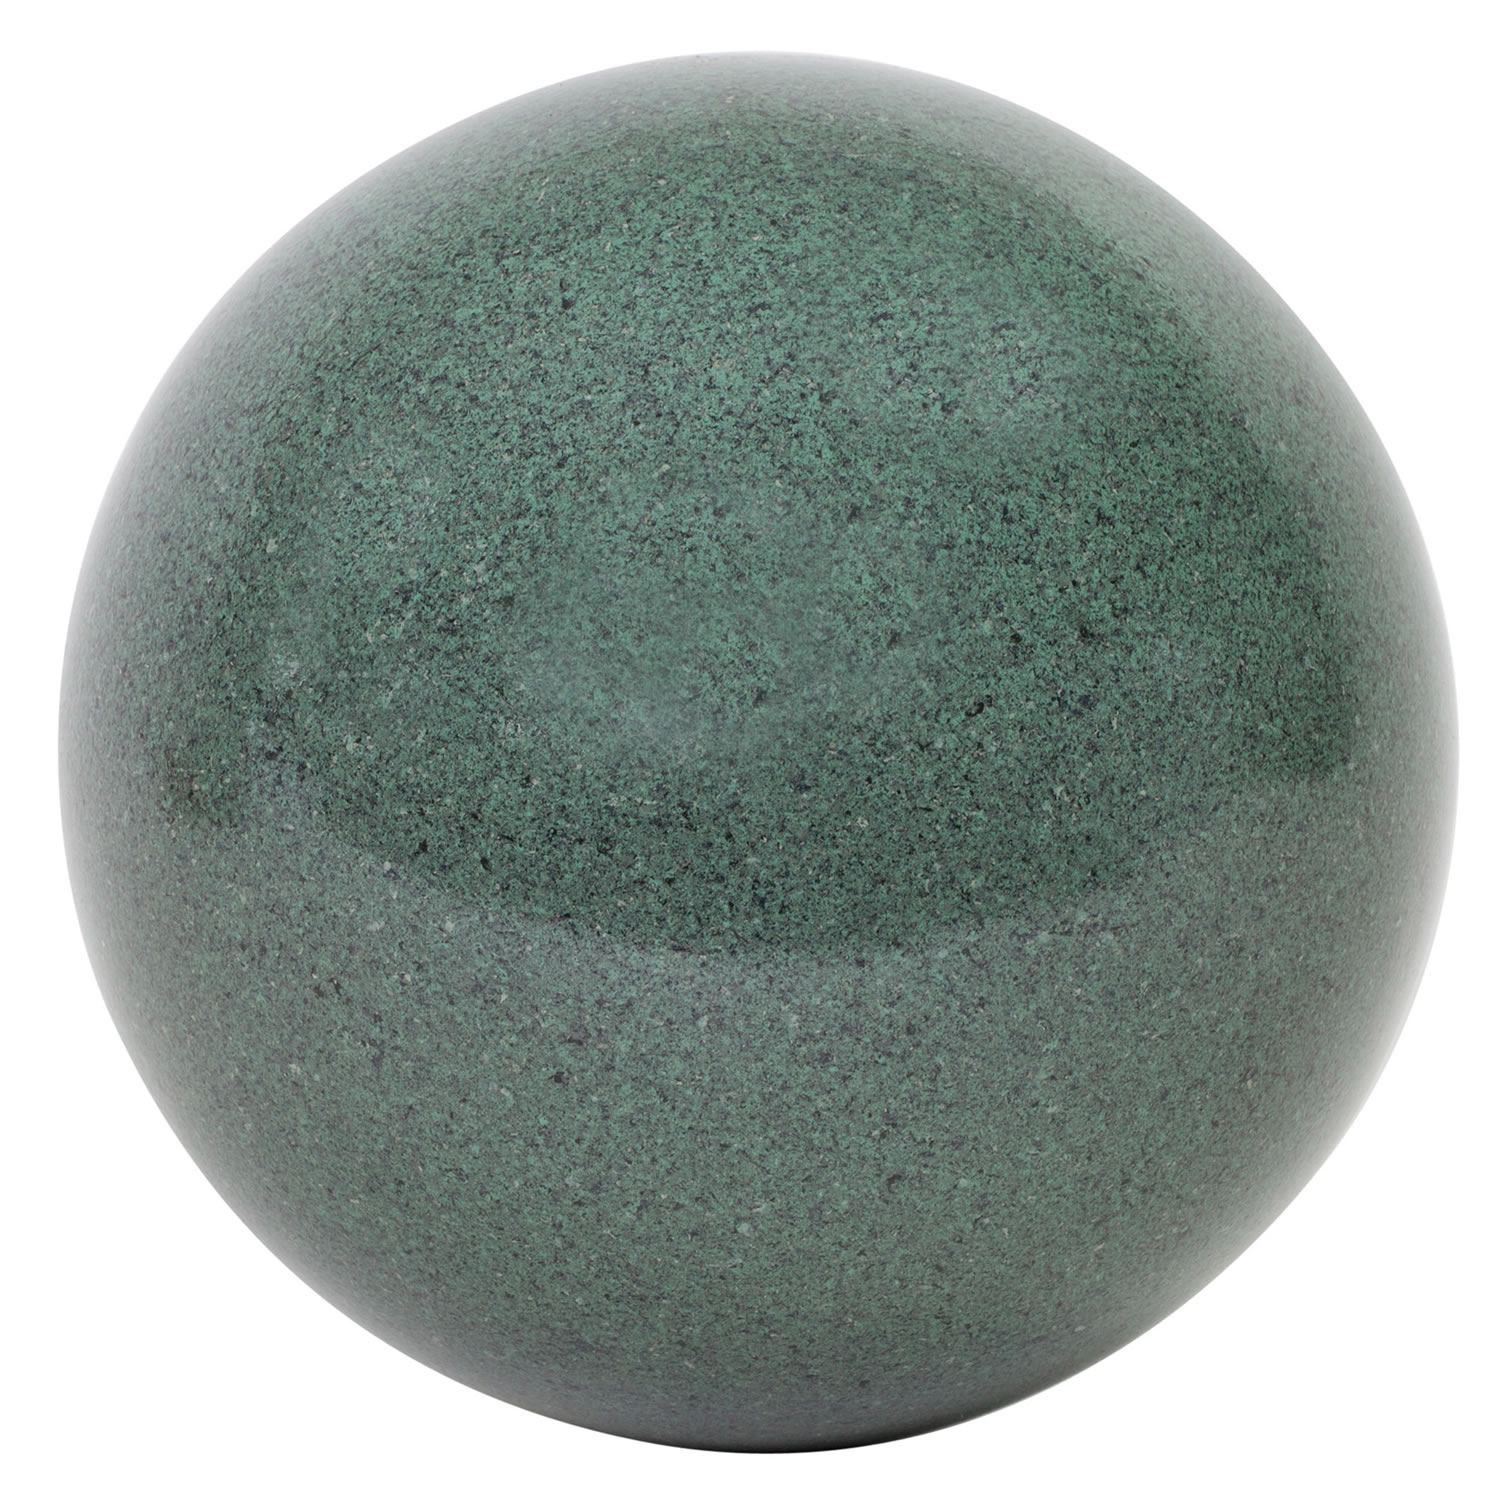 Green Marble Ball : Green marble effect cm stainless steel garden gazing